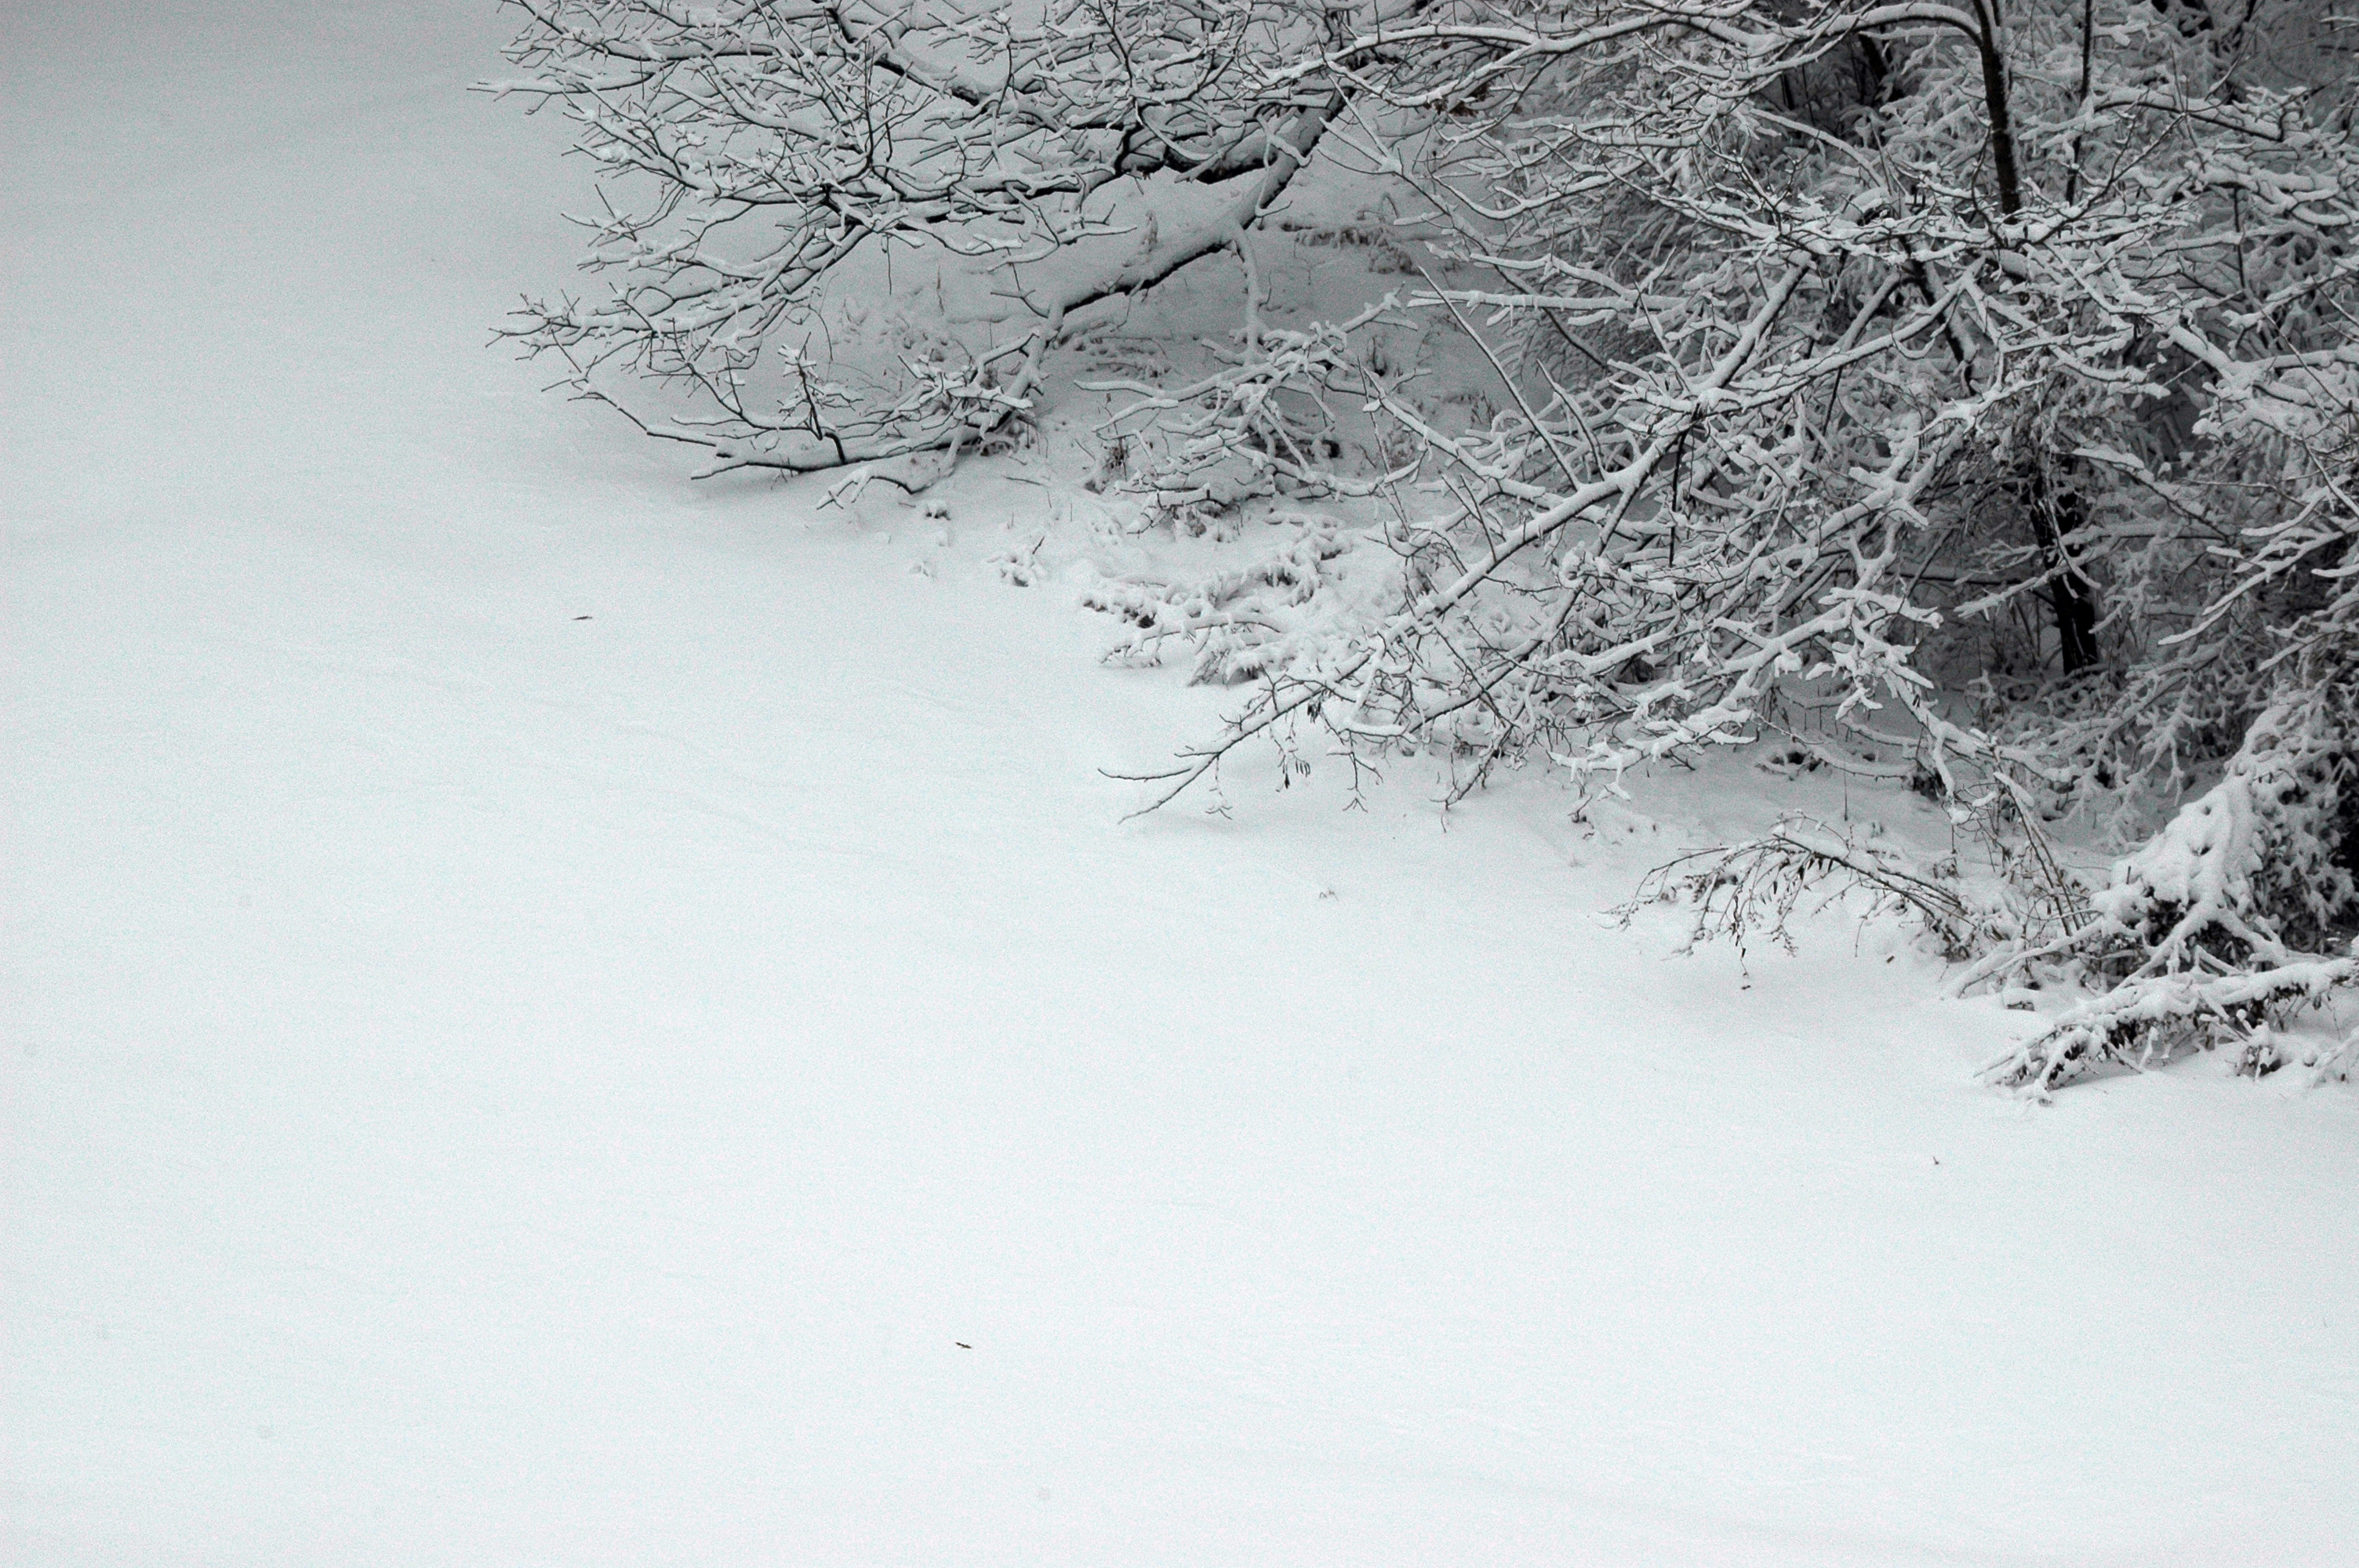 Drifting Snow Against Tree